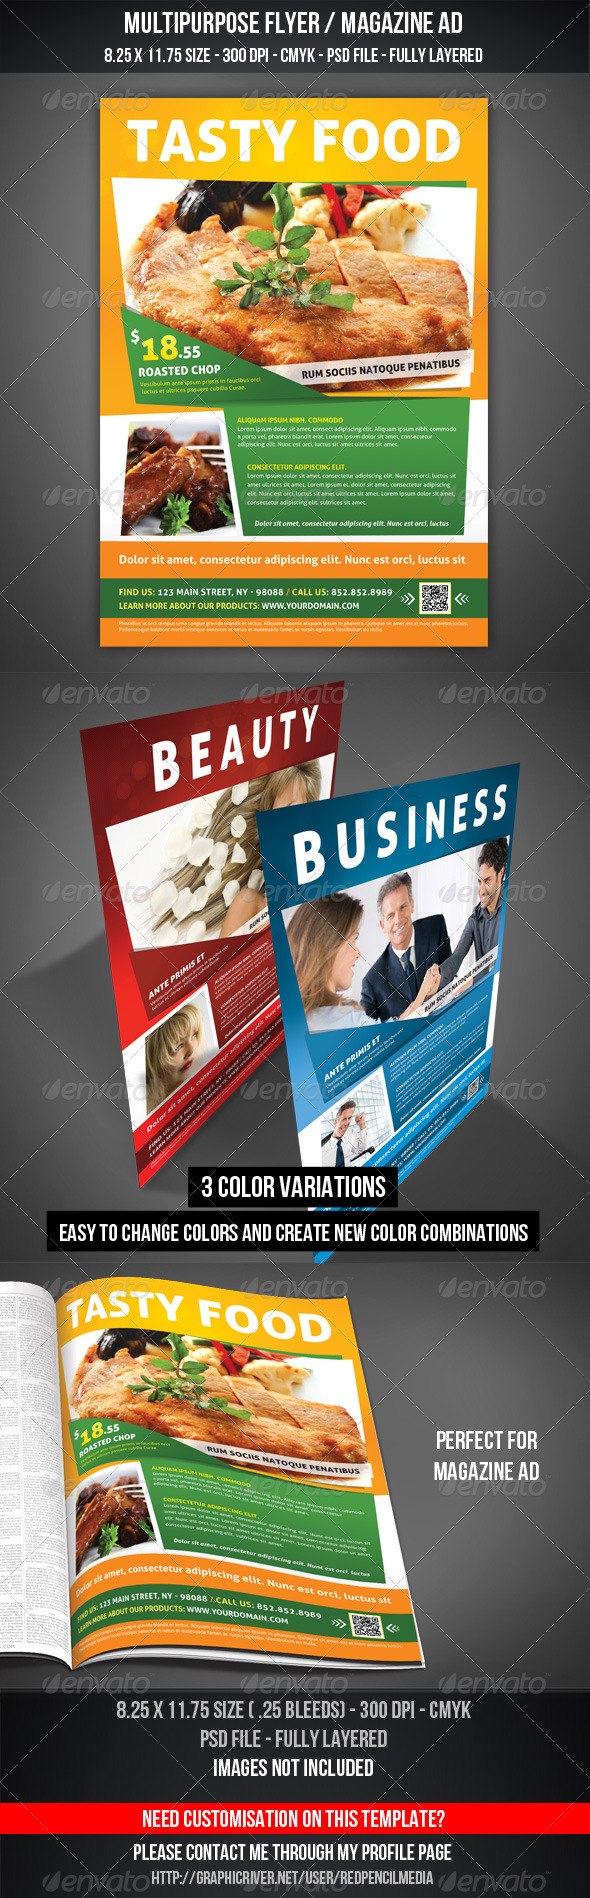 GraphicRiver Multipurpose Flyer Magazine AD 3339668